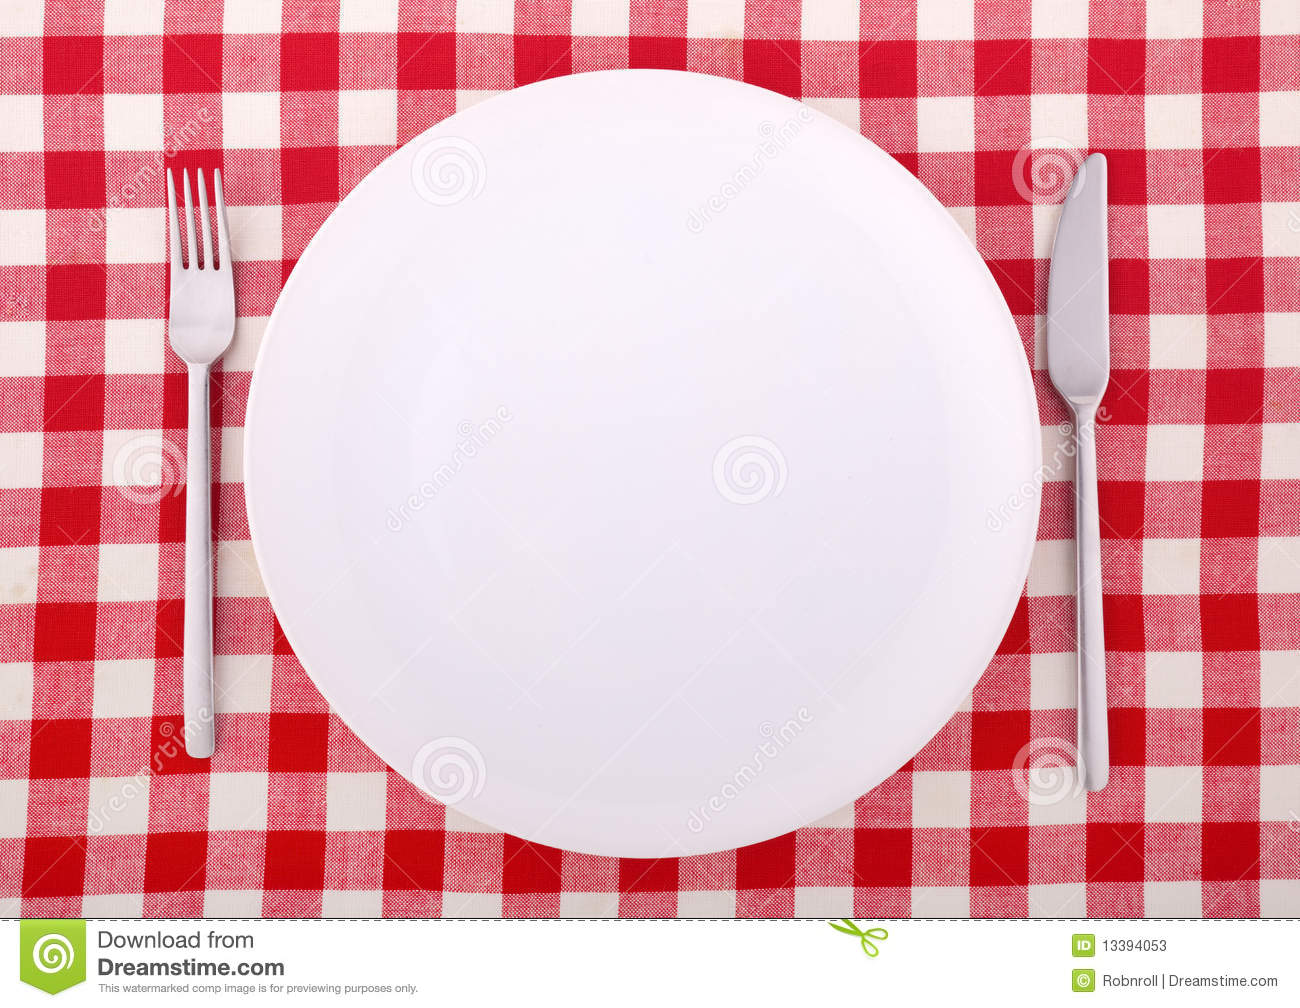 Tablecloth With Fork, Knife And An Empty Plate Stock Photos - Image ...